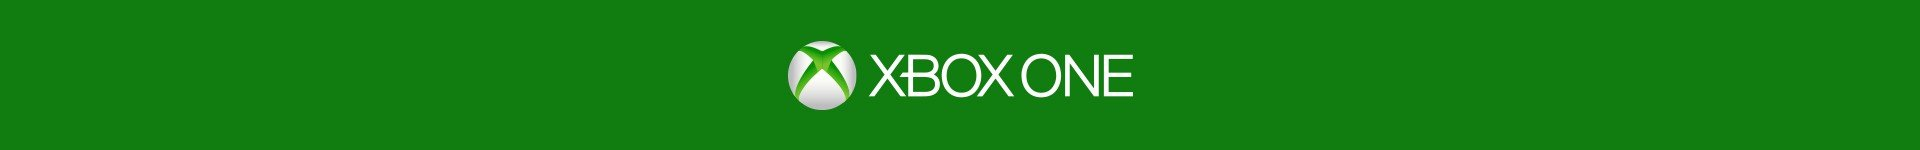 Buy Xbox One accessories at Coolshop